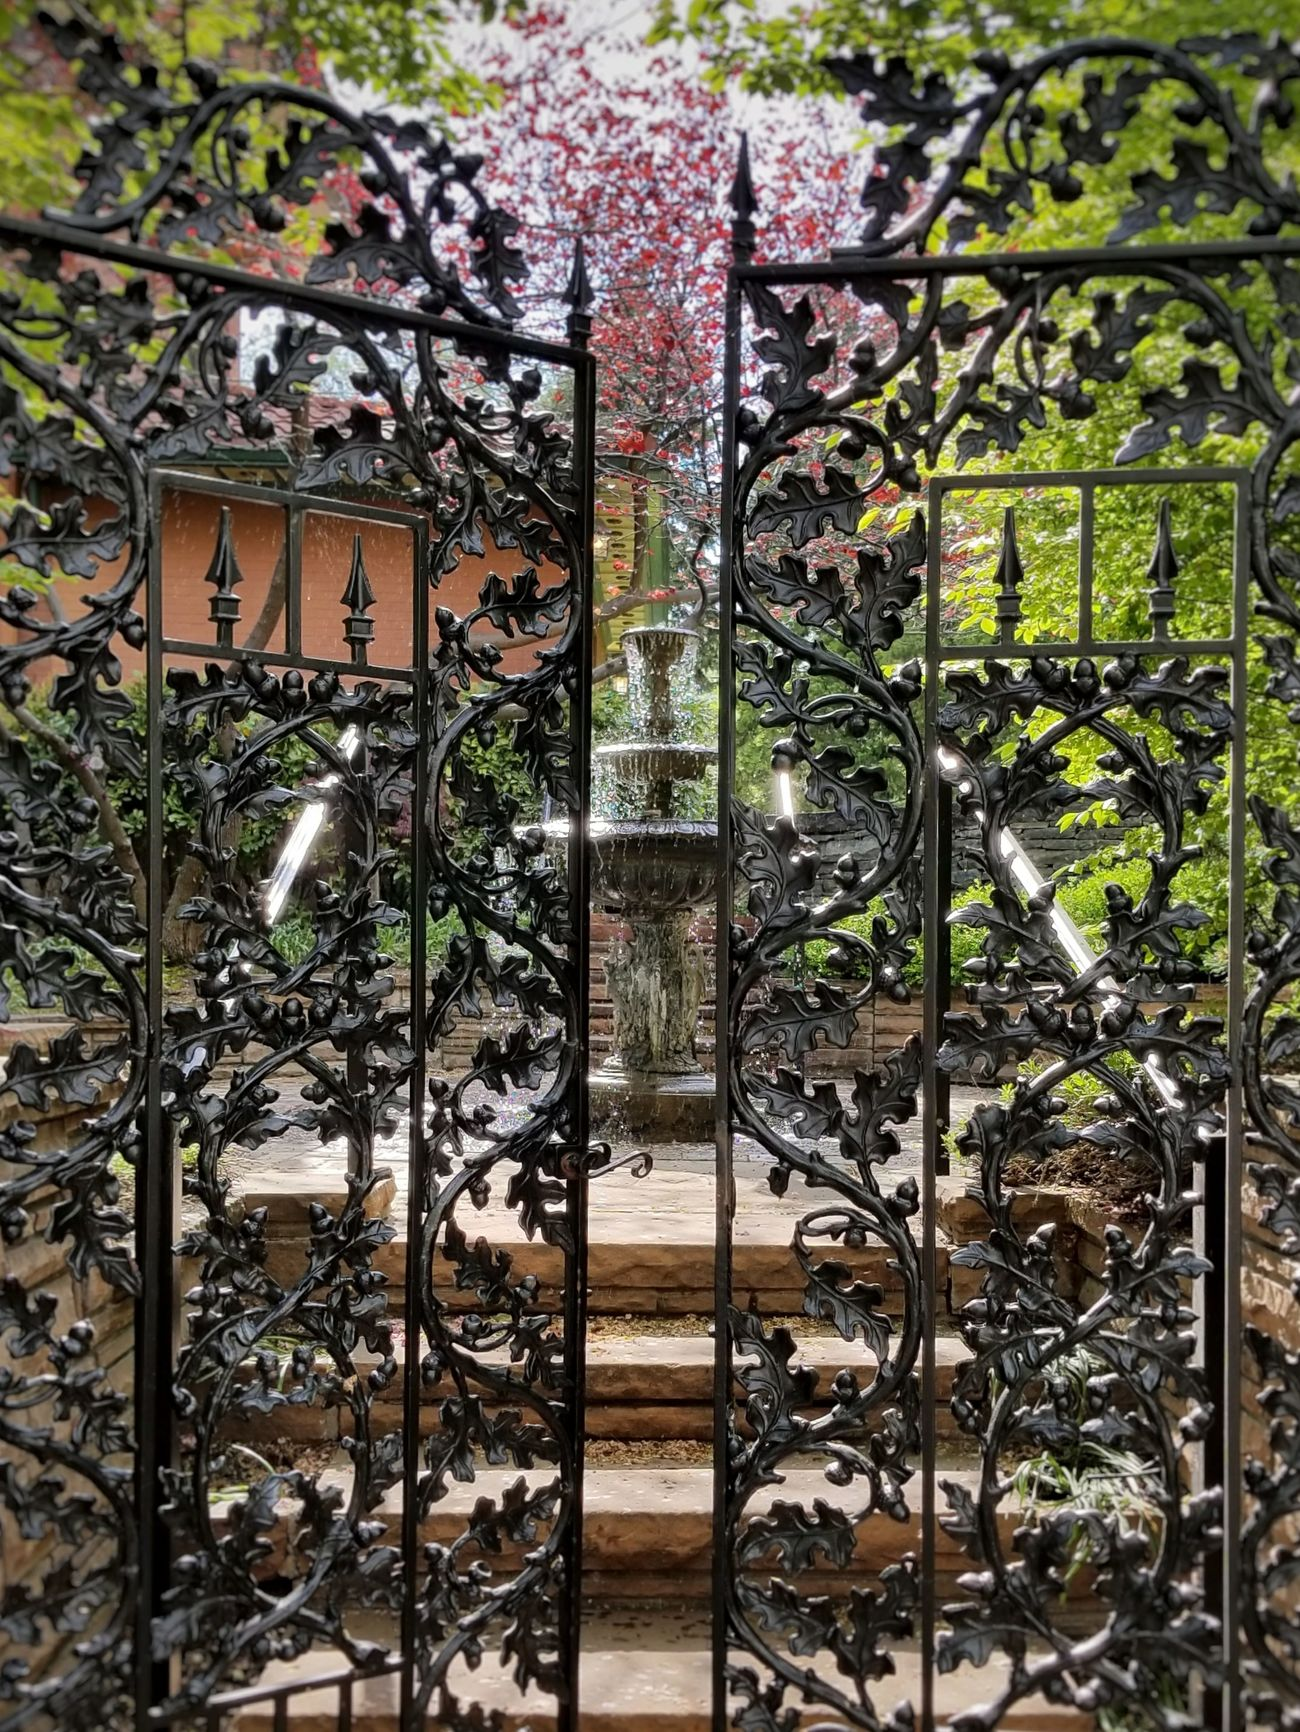 Hidden garden. No People Backgrounds Day Pattern Full Frame Outdoors Close-up Trees Architecture Fountains Wrought Iron Gate EyeEm Best Shots